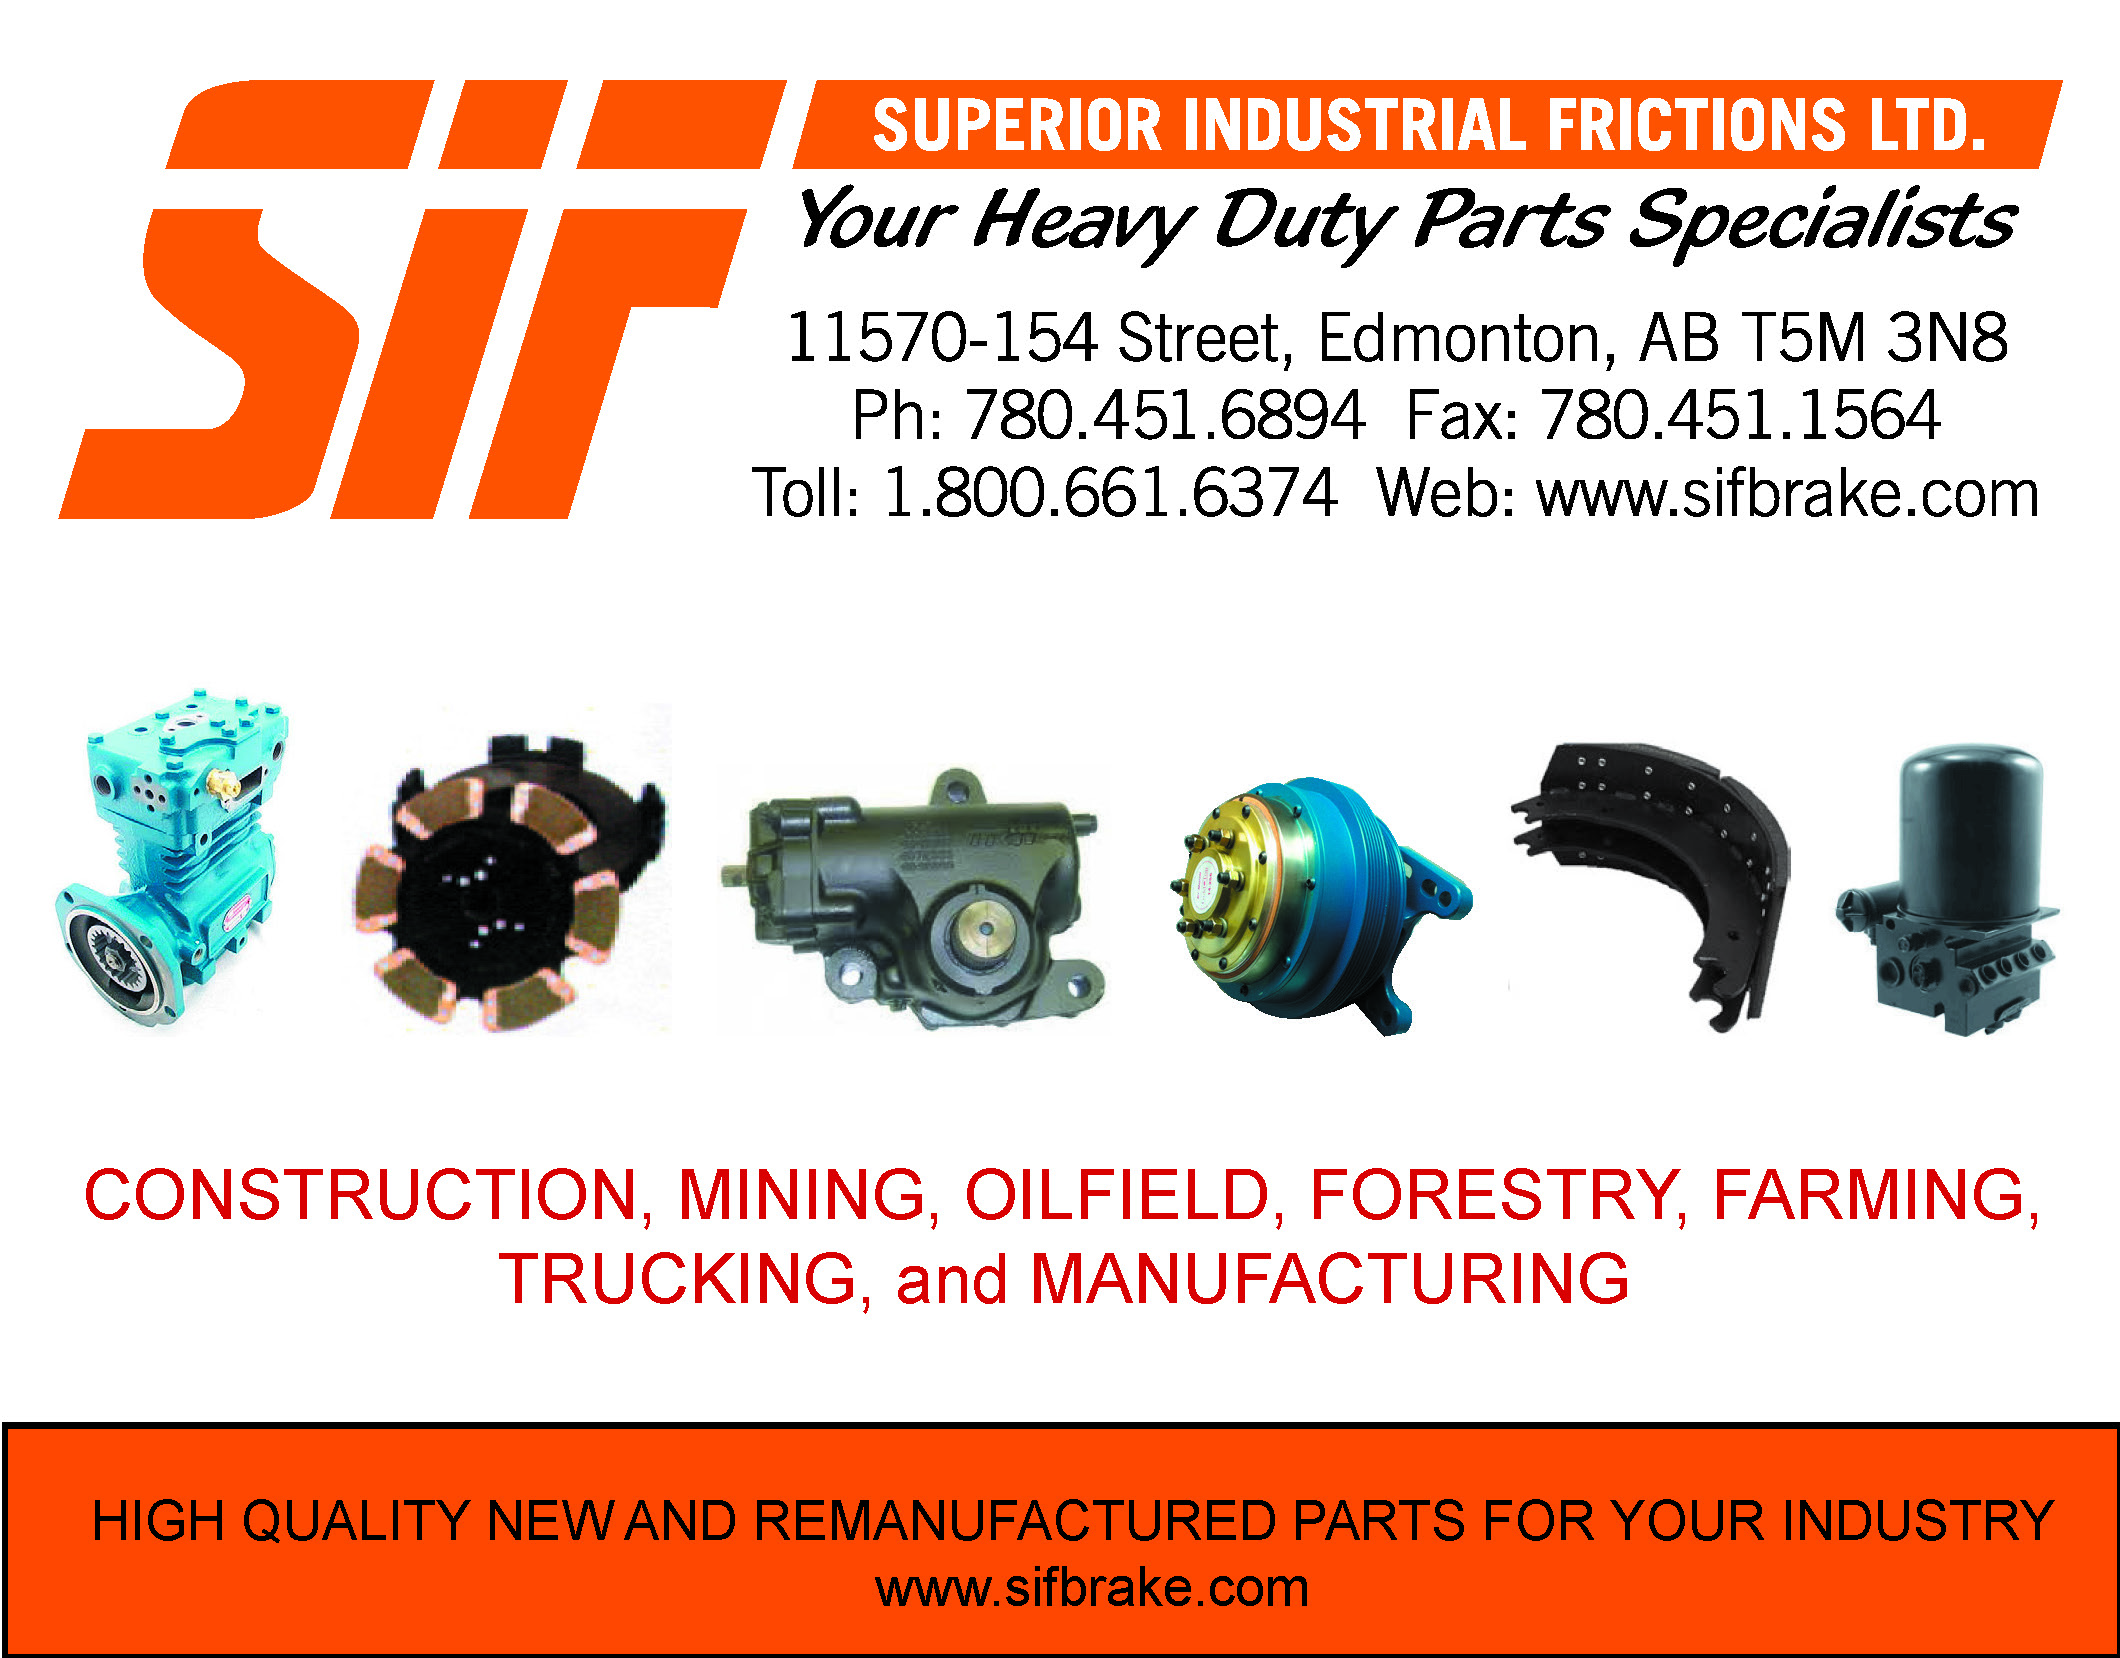 superior-industrial-frictions-ltd-qtWzBhN.jpeg